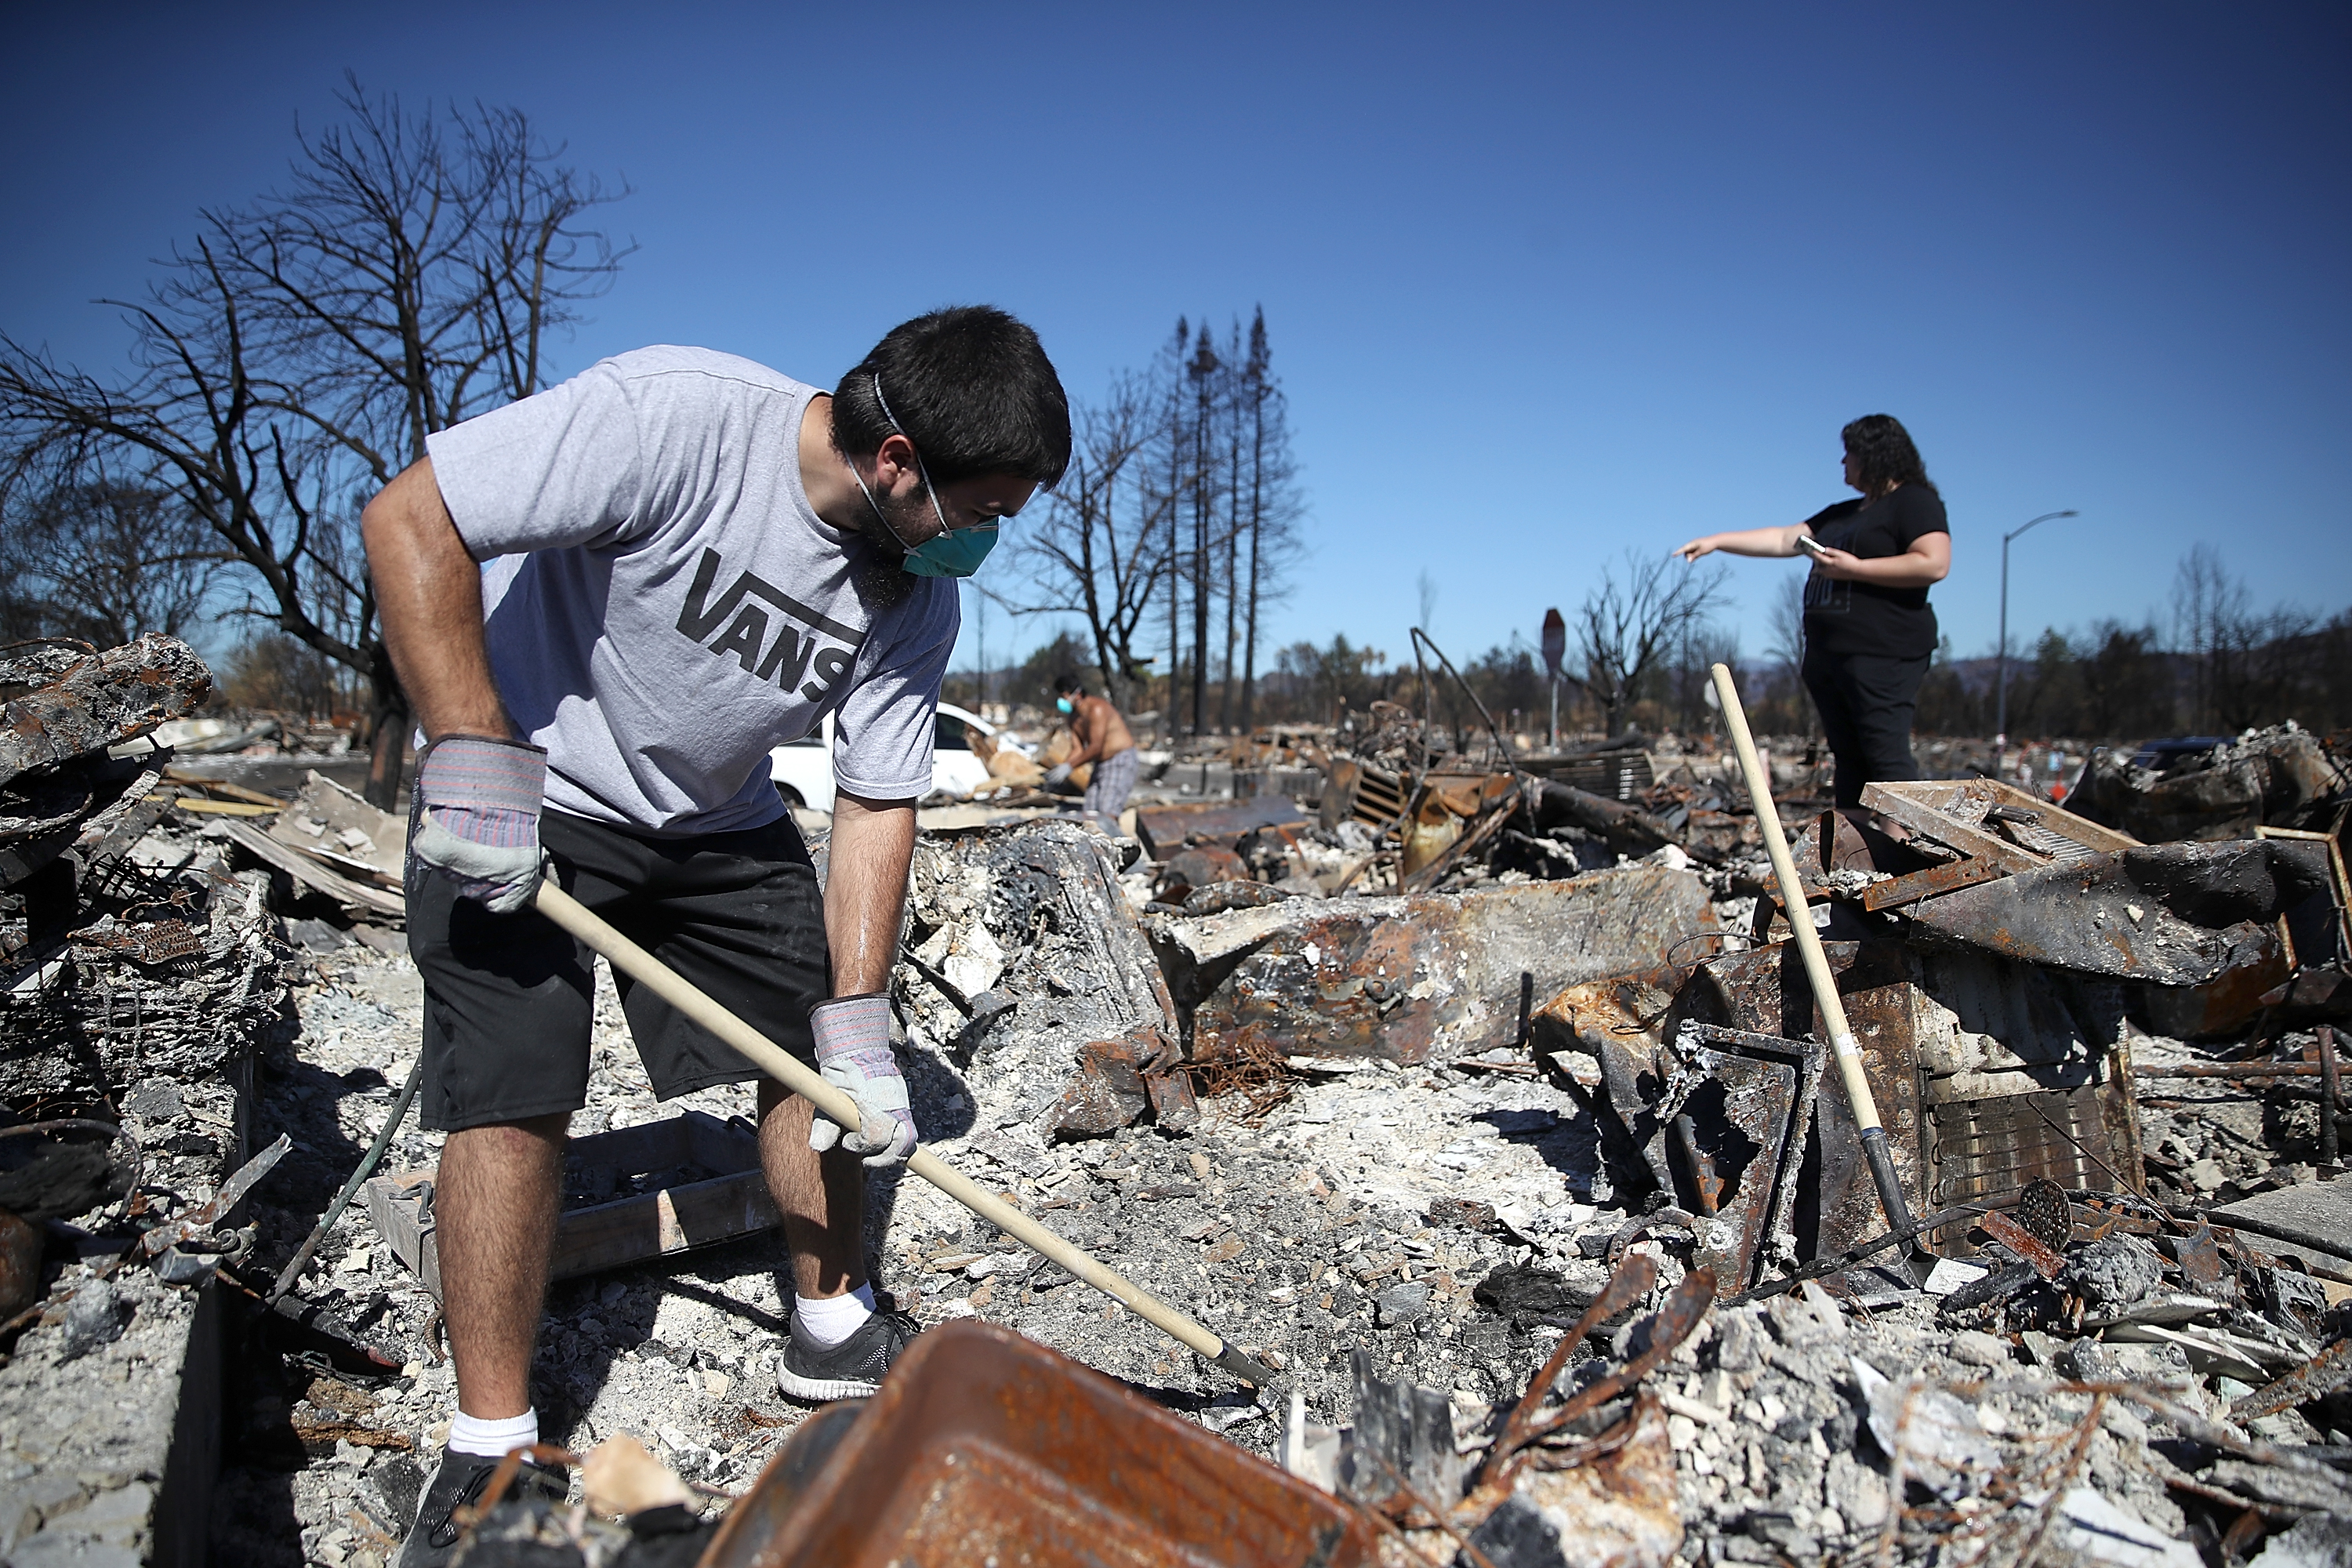 SANTA ROSA, CA - OCTOBER 23: Ben Hernandez Jr. (L) sifts through the remains of his Coffey Park home that was destroyed by the Tubbs Fire on October 23, 2017 in Santa Rosa, California. Residents are returning to their homes after a fast moving and deadly widlfire destroyed 8,400 structures and claimed the lives of at least 42 people. (Photo by Justin Sullivan/Getty Images)